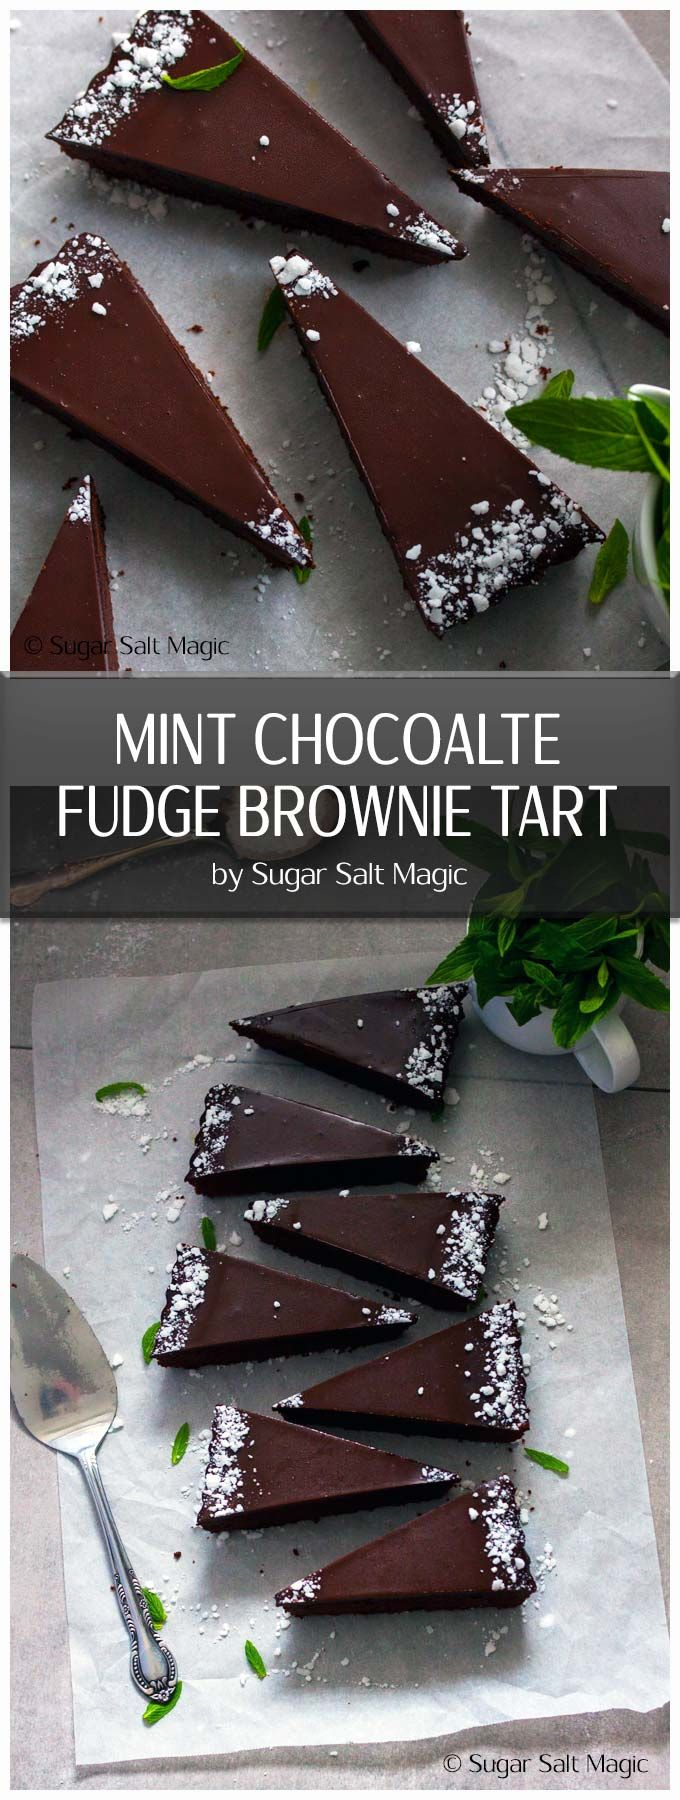 Mint Chocolate Fudge Brownie Tart is chocolate brownie in a chocolate cookie shell, topped with chocolate and all three spiked with mint. via @sugarsaltmagic